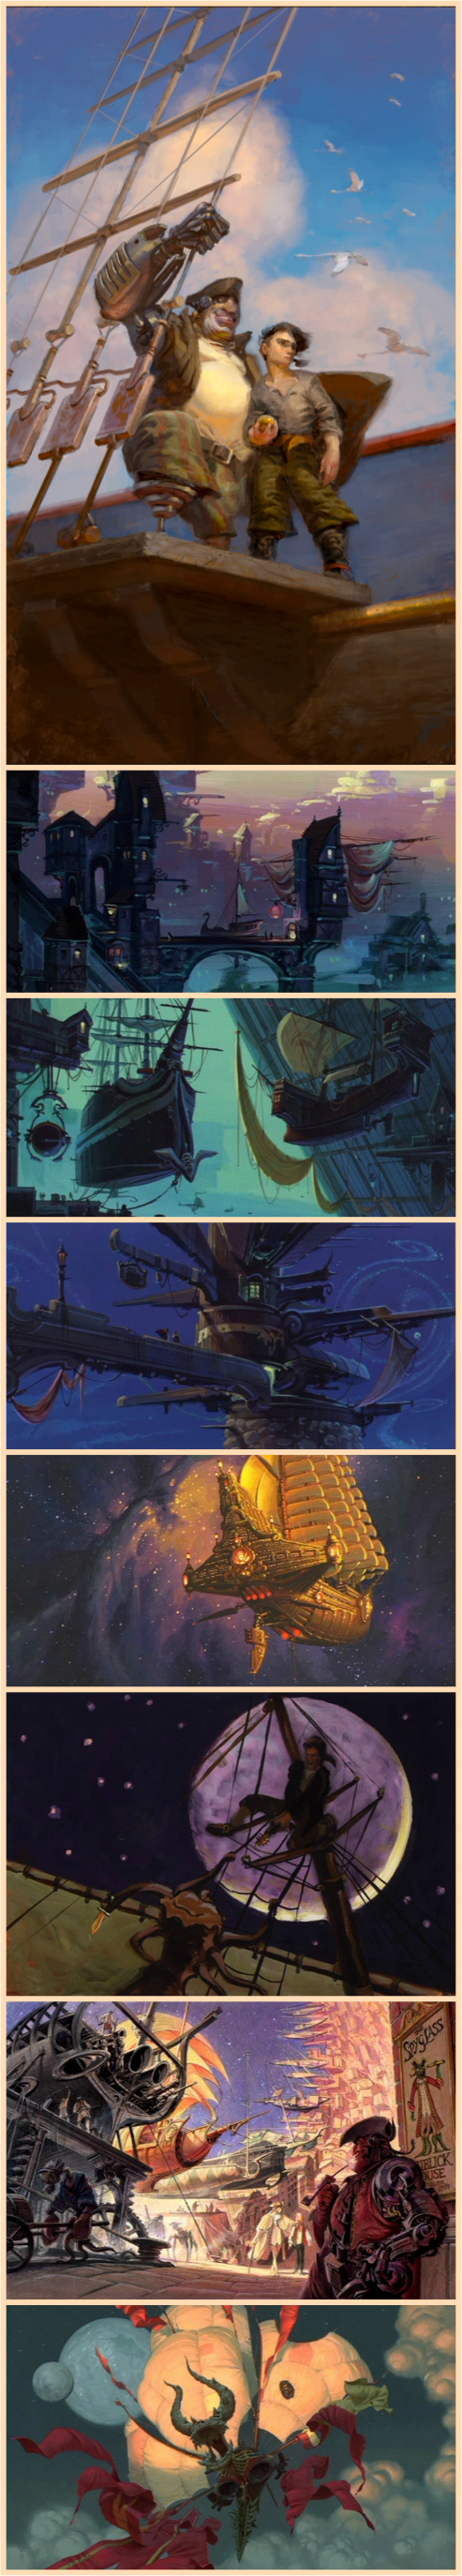 Treasure Planet concept art. (Not my favorite Disney movie, but the montage scene was pretty awesome.)